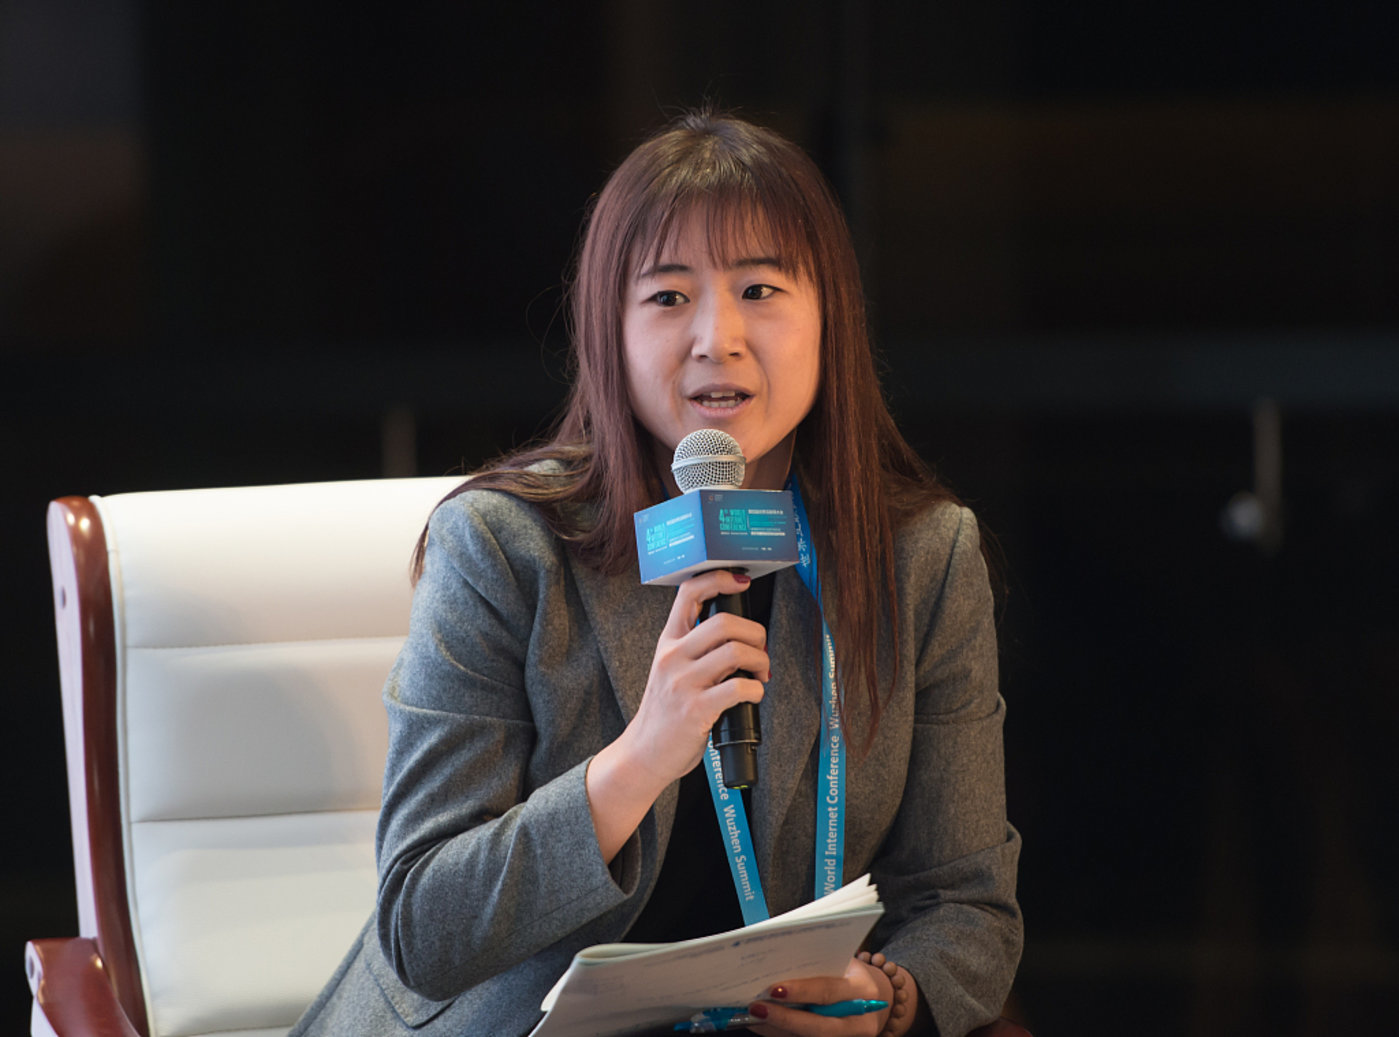 VIPKid founder and CEO Cindy Mi